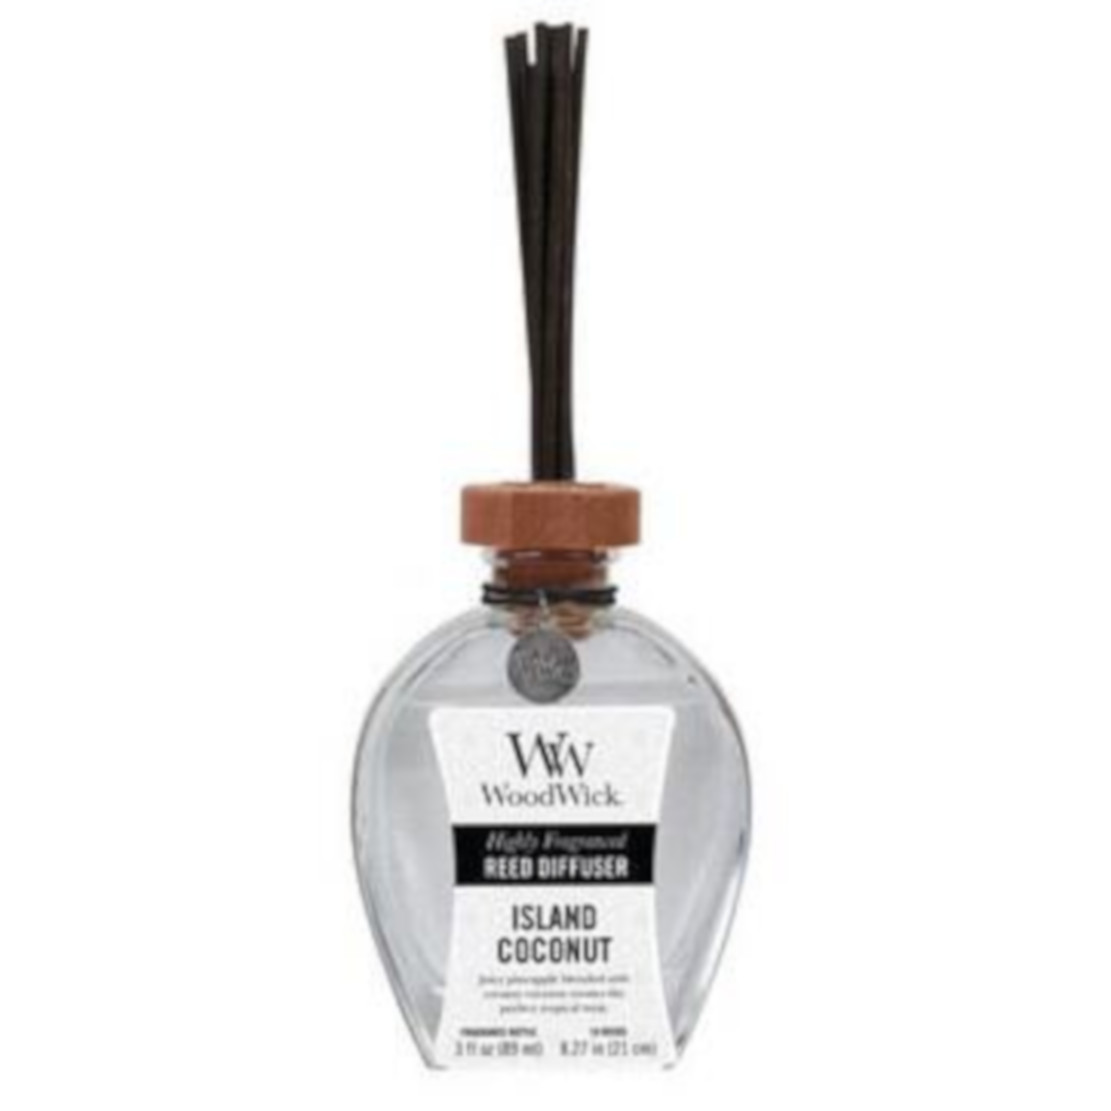 Woodwick Island Coconut Reed Diffuser